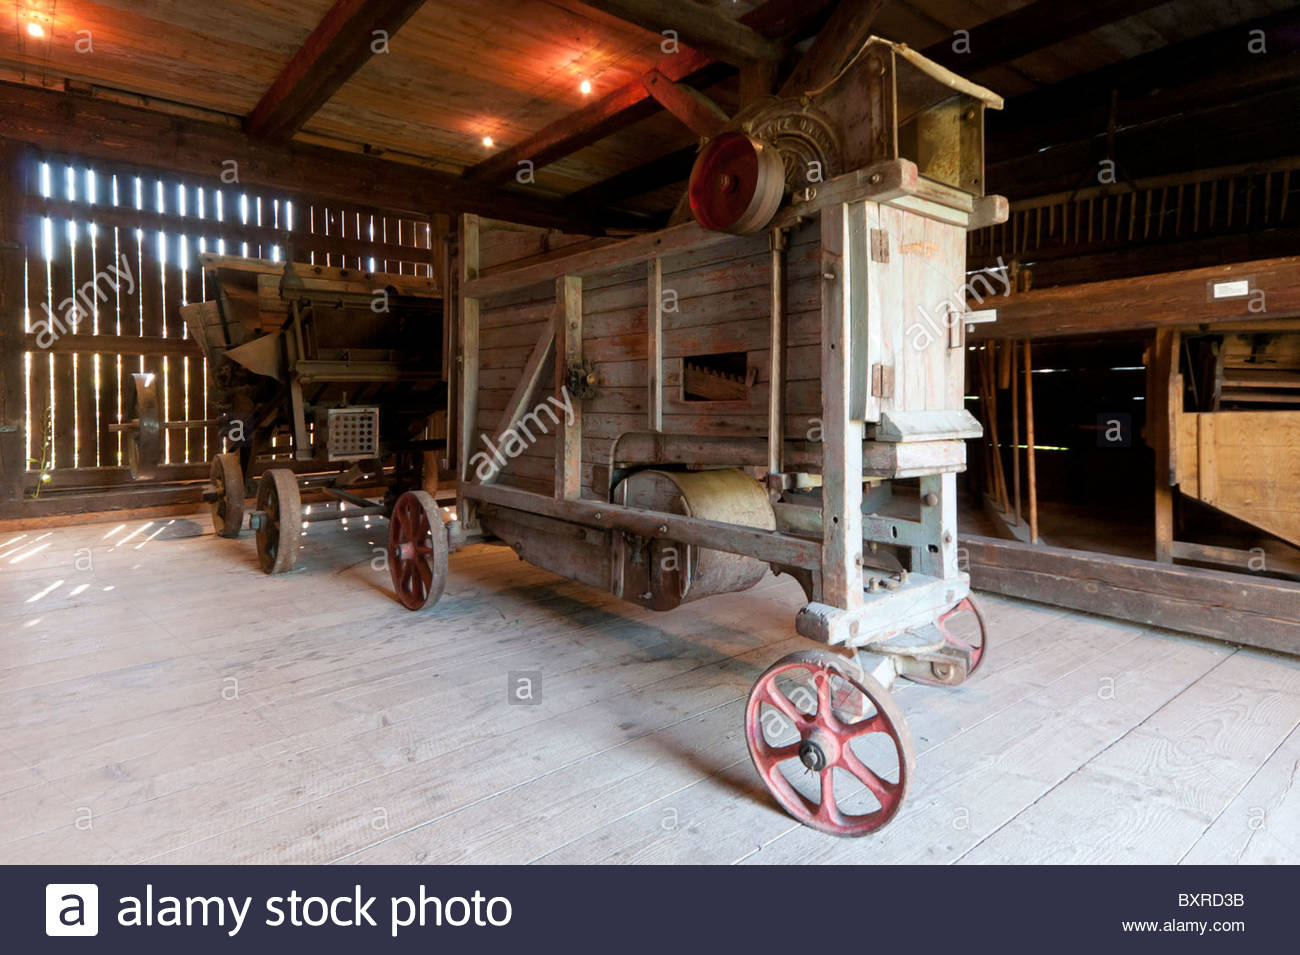 Exhibition at the Blockscheune barn, Hohenfelden Thuringian open-air museum, Thuringia, Germany, Europe - Stock Image